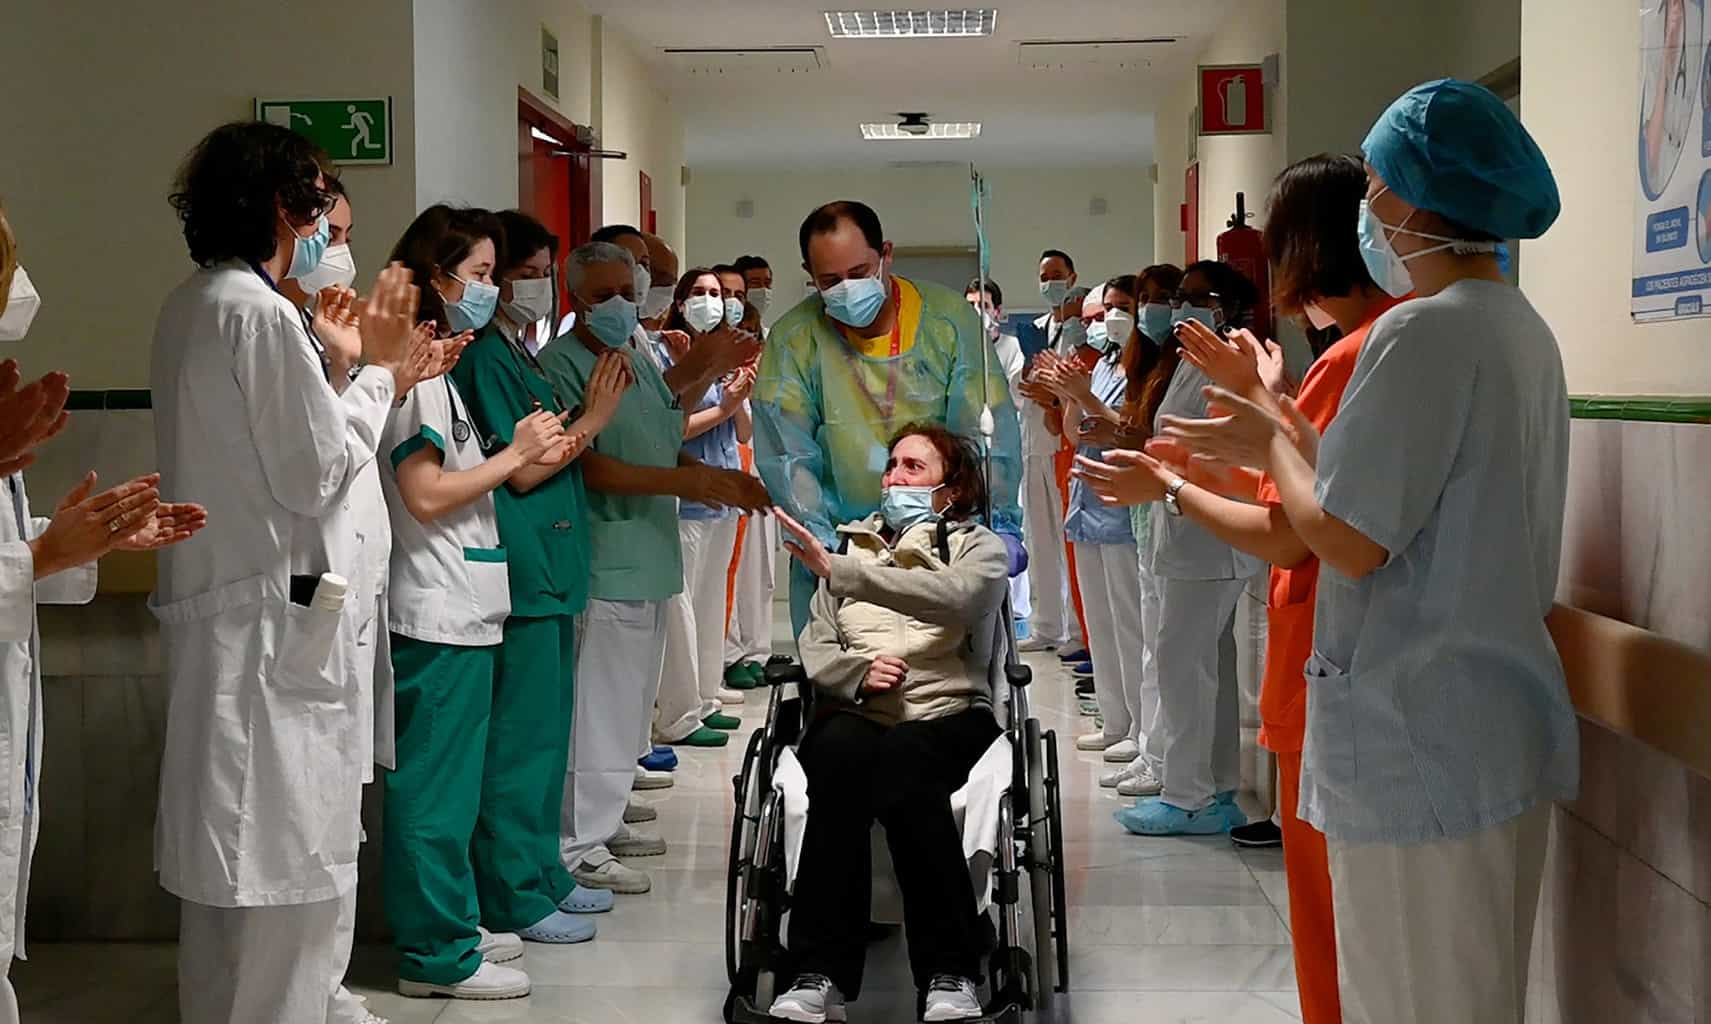 Elsa being applauded in her release from the hospital. Notes: Picture provided by the hospital (H. Gregorio Maranon/Newsflash)